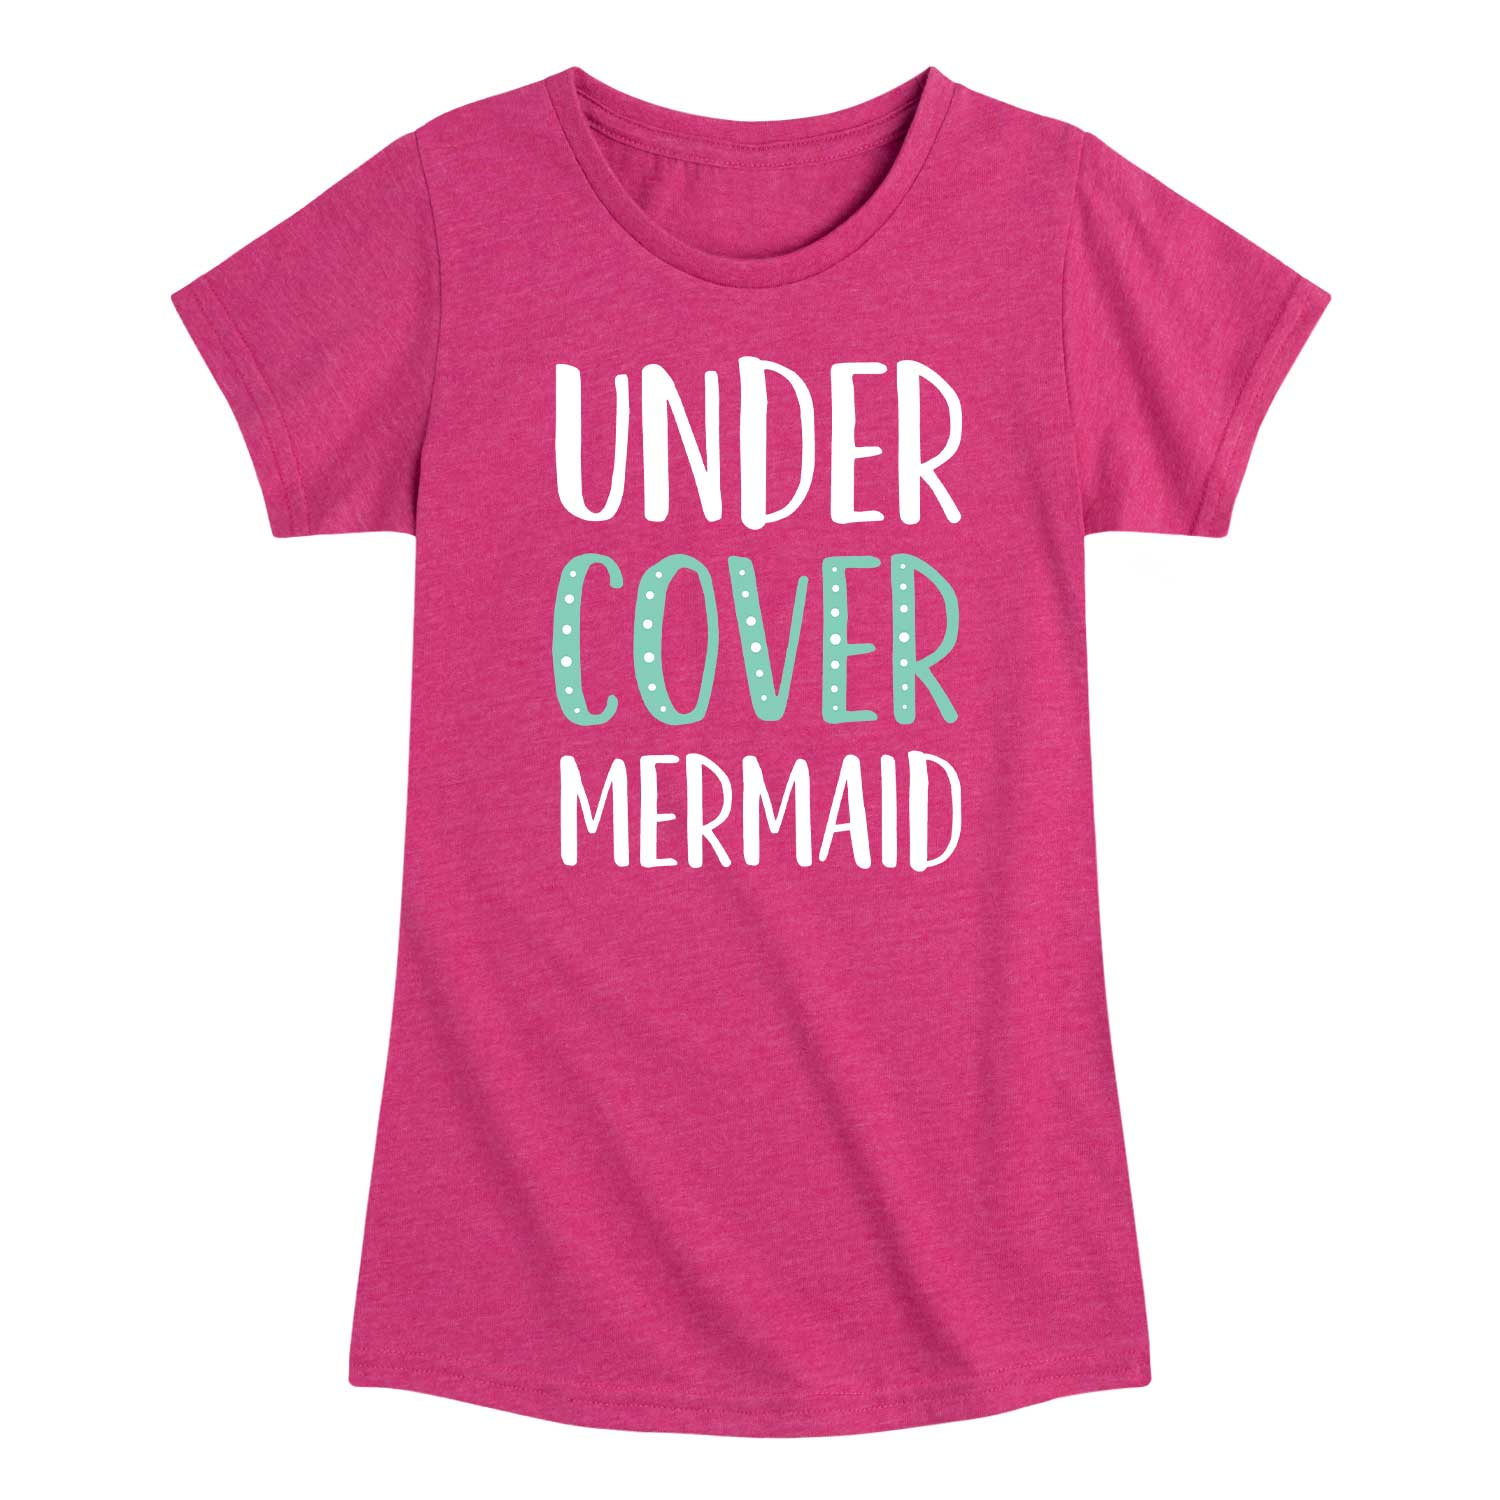 Undercover Mermaid - Youth & Toddler Girls Short Sleeve T-Shirt